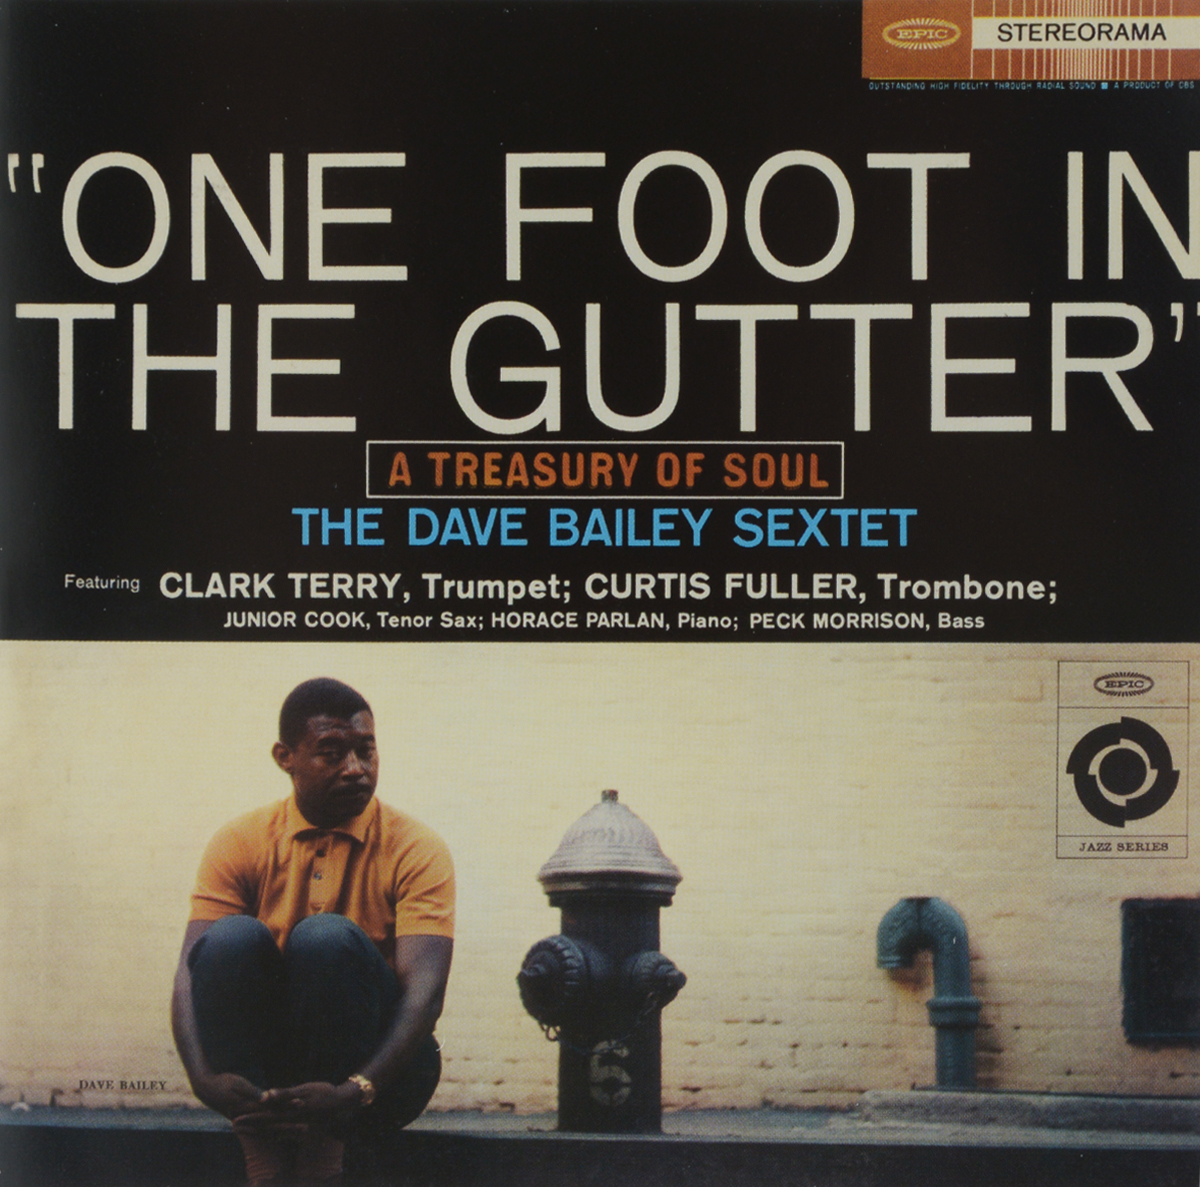 Дейв Бейли,Кларк Терри,Кертис Фуллер,Junior Cook,Хорас Парлэн,Peck Morrison The Dave Bailey Sextet. One Foot In The Gutter the bremen town musicians